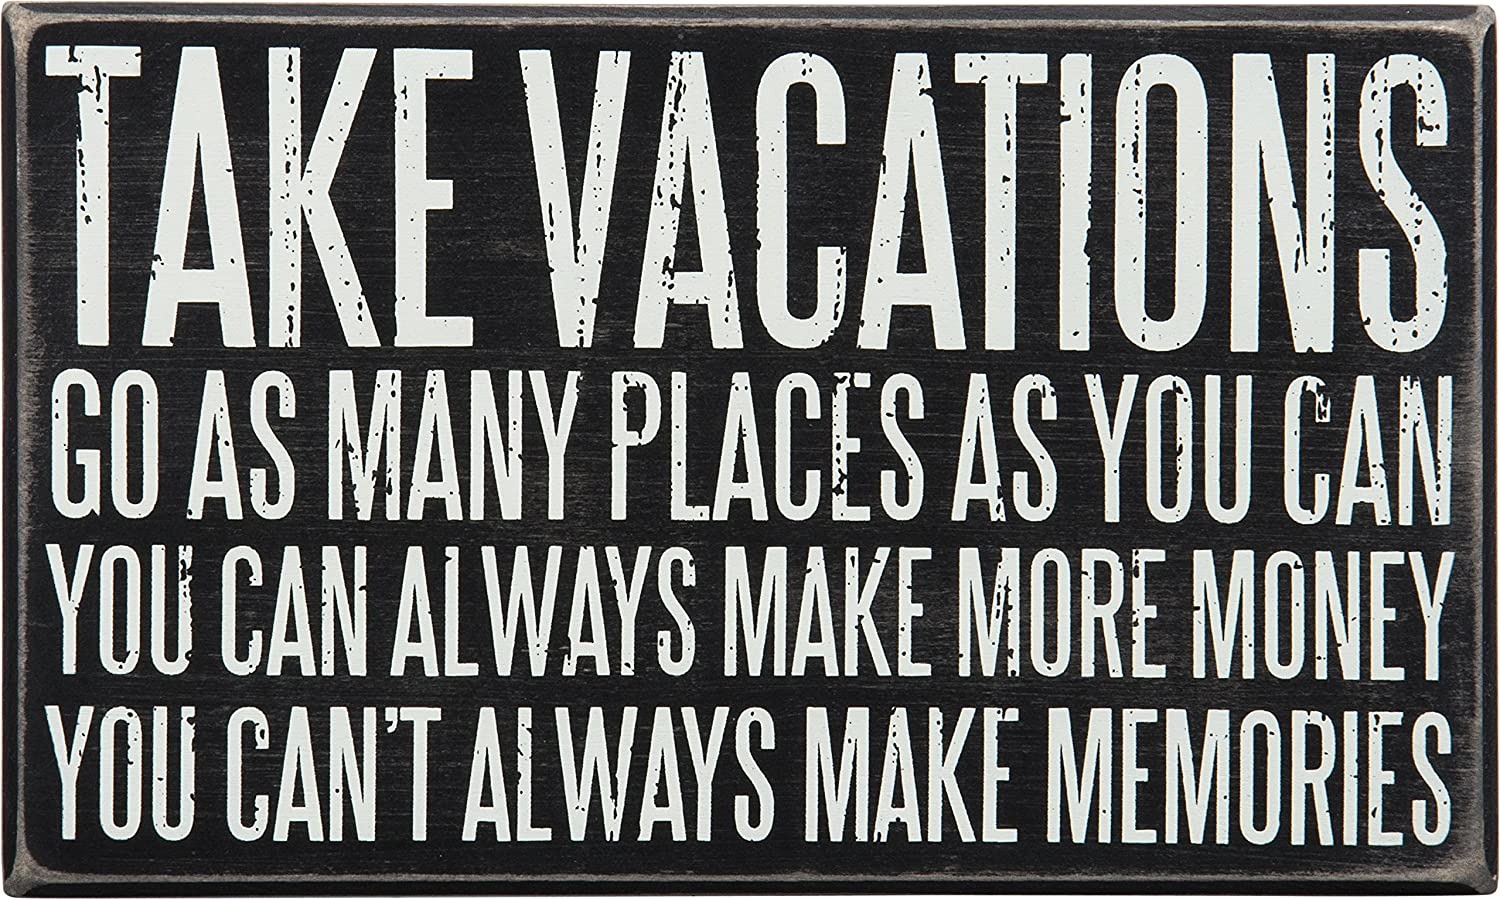 Primitives by Kathy Classic Box Sign, 10 x 6-Inches, Take Vacations